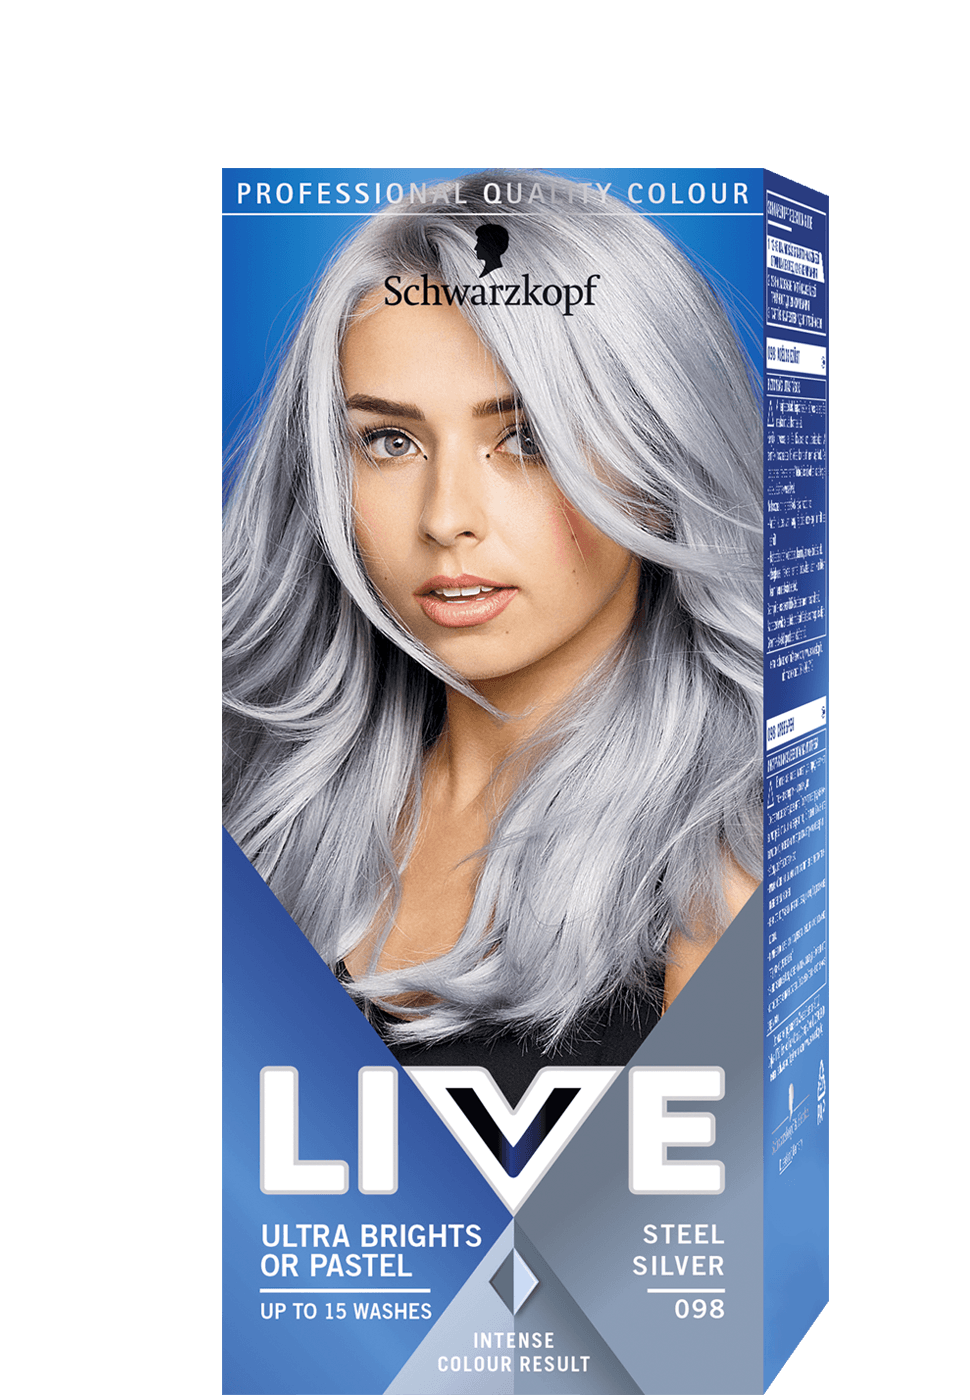 live_color_uk_ultra_brights_pastel_steel_silver_970x1400